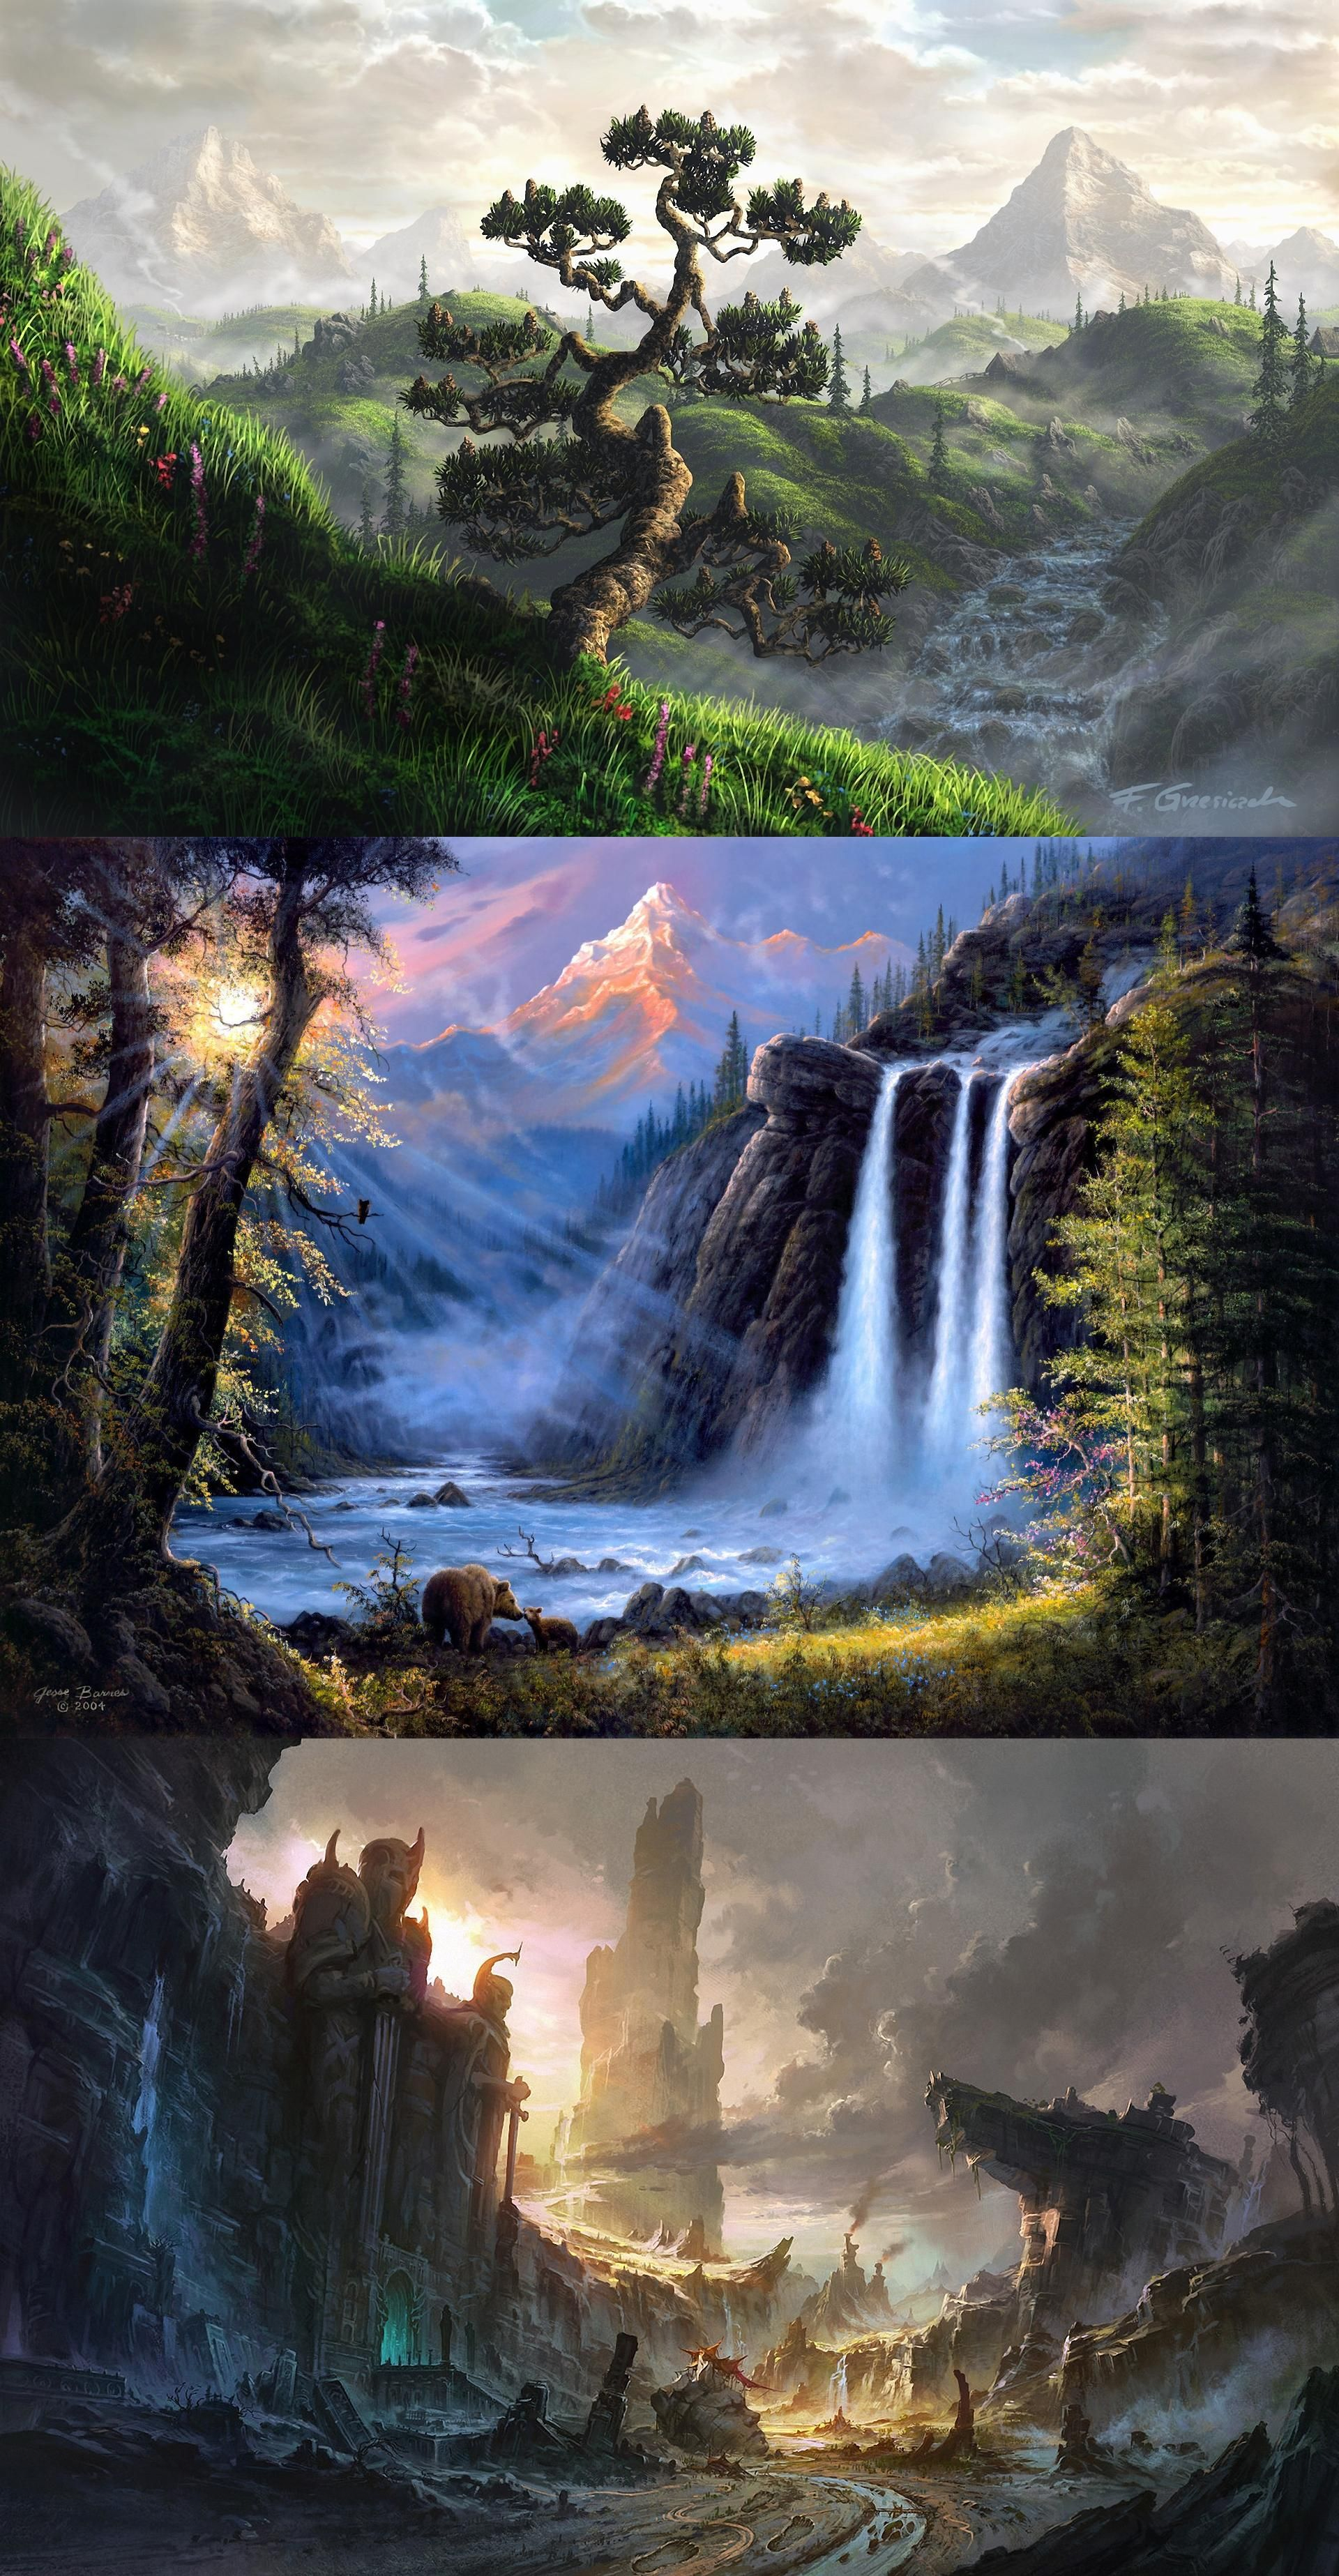 Art, Fel X, Landscape, Mountains, Flowers, Waterfall, River, Fog, Clouds, House,